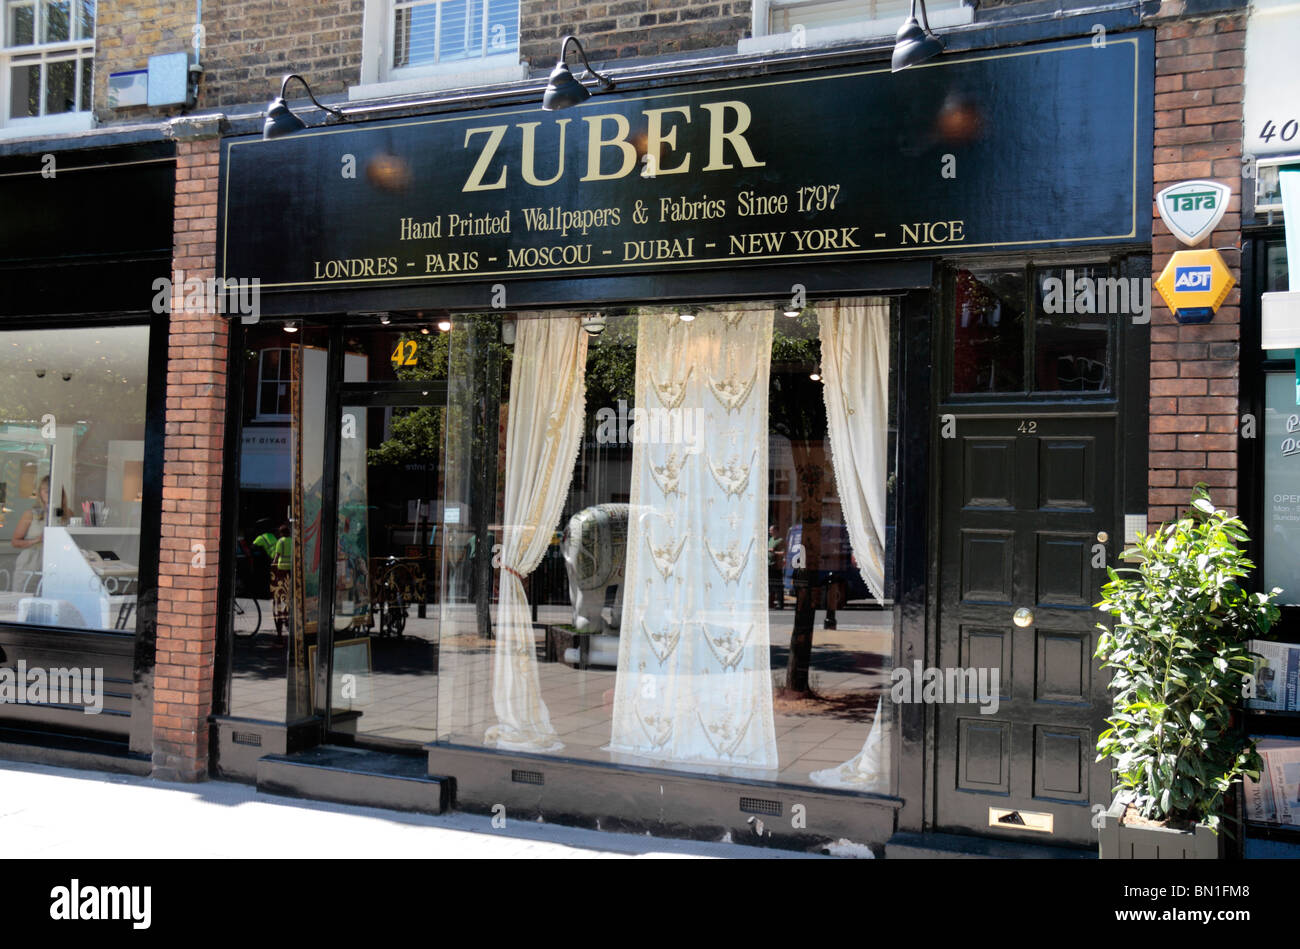 The shop front of the Zuber Wallpaper and fabrics shop, 42 Pimlico Road, London